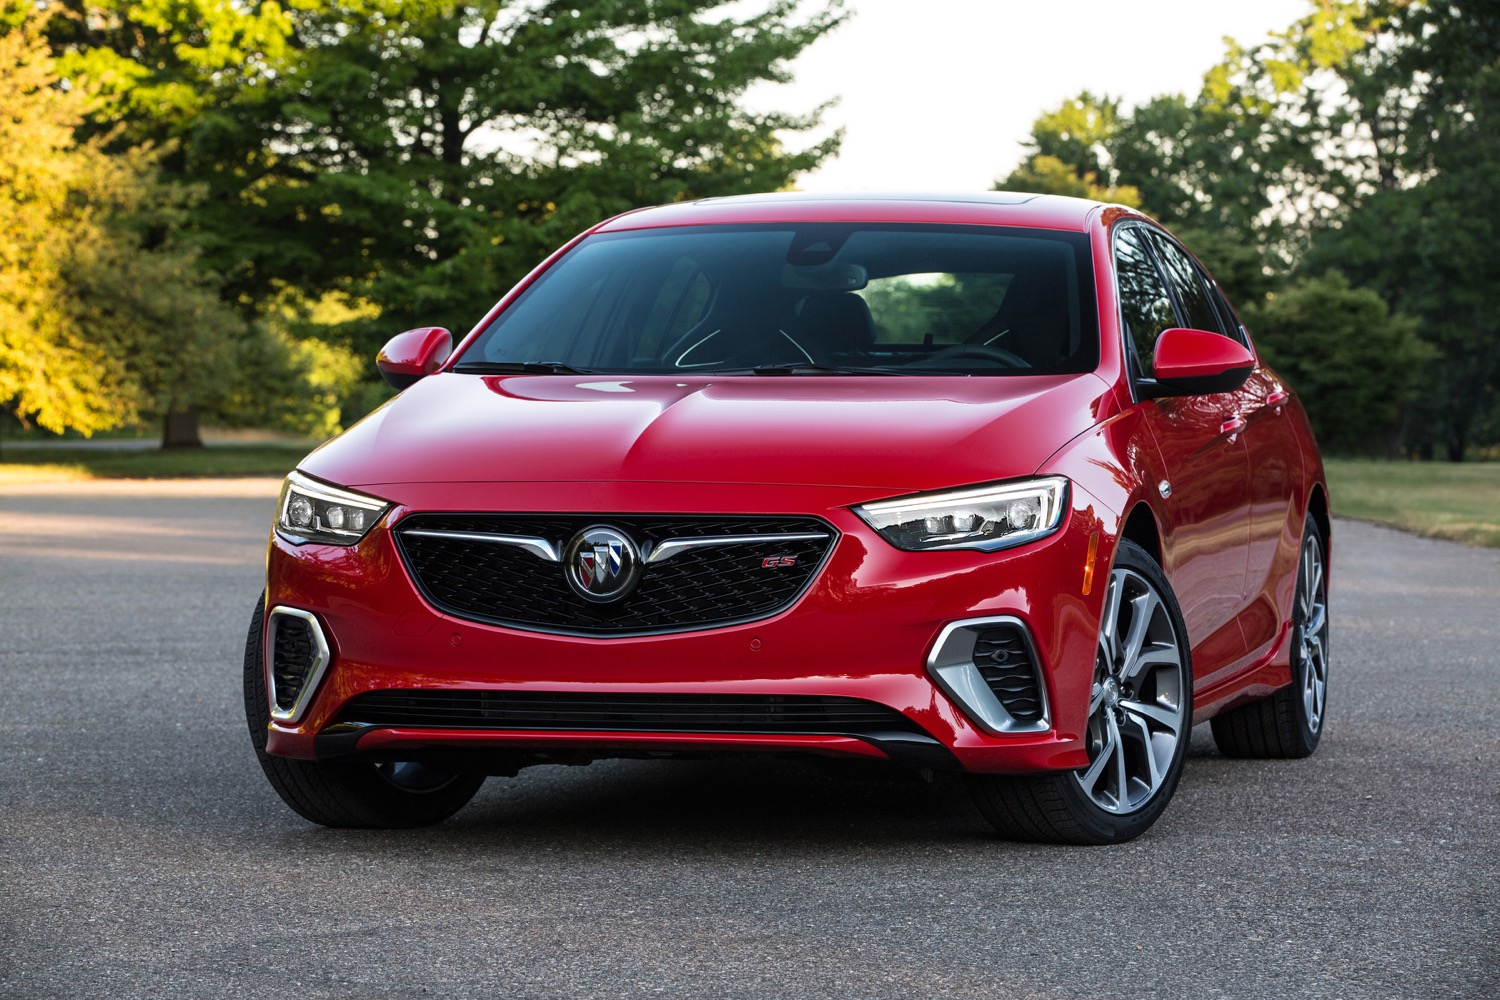 We Have Some Beef With This 2018 Buick Regal Gs Review | Gm 2021 Buick Regal Gs Price, Review, 0-60